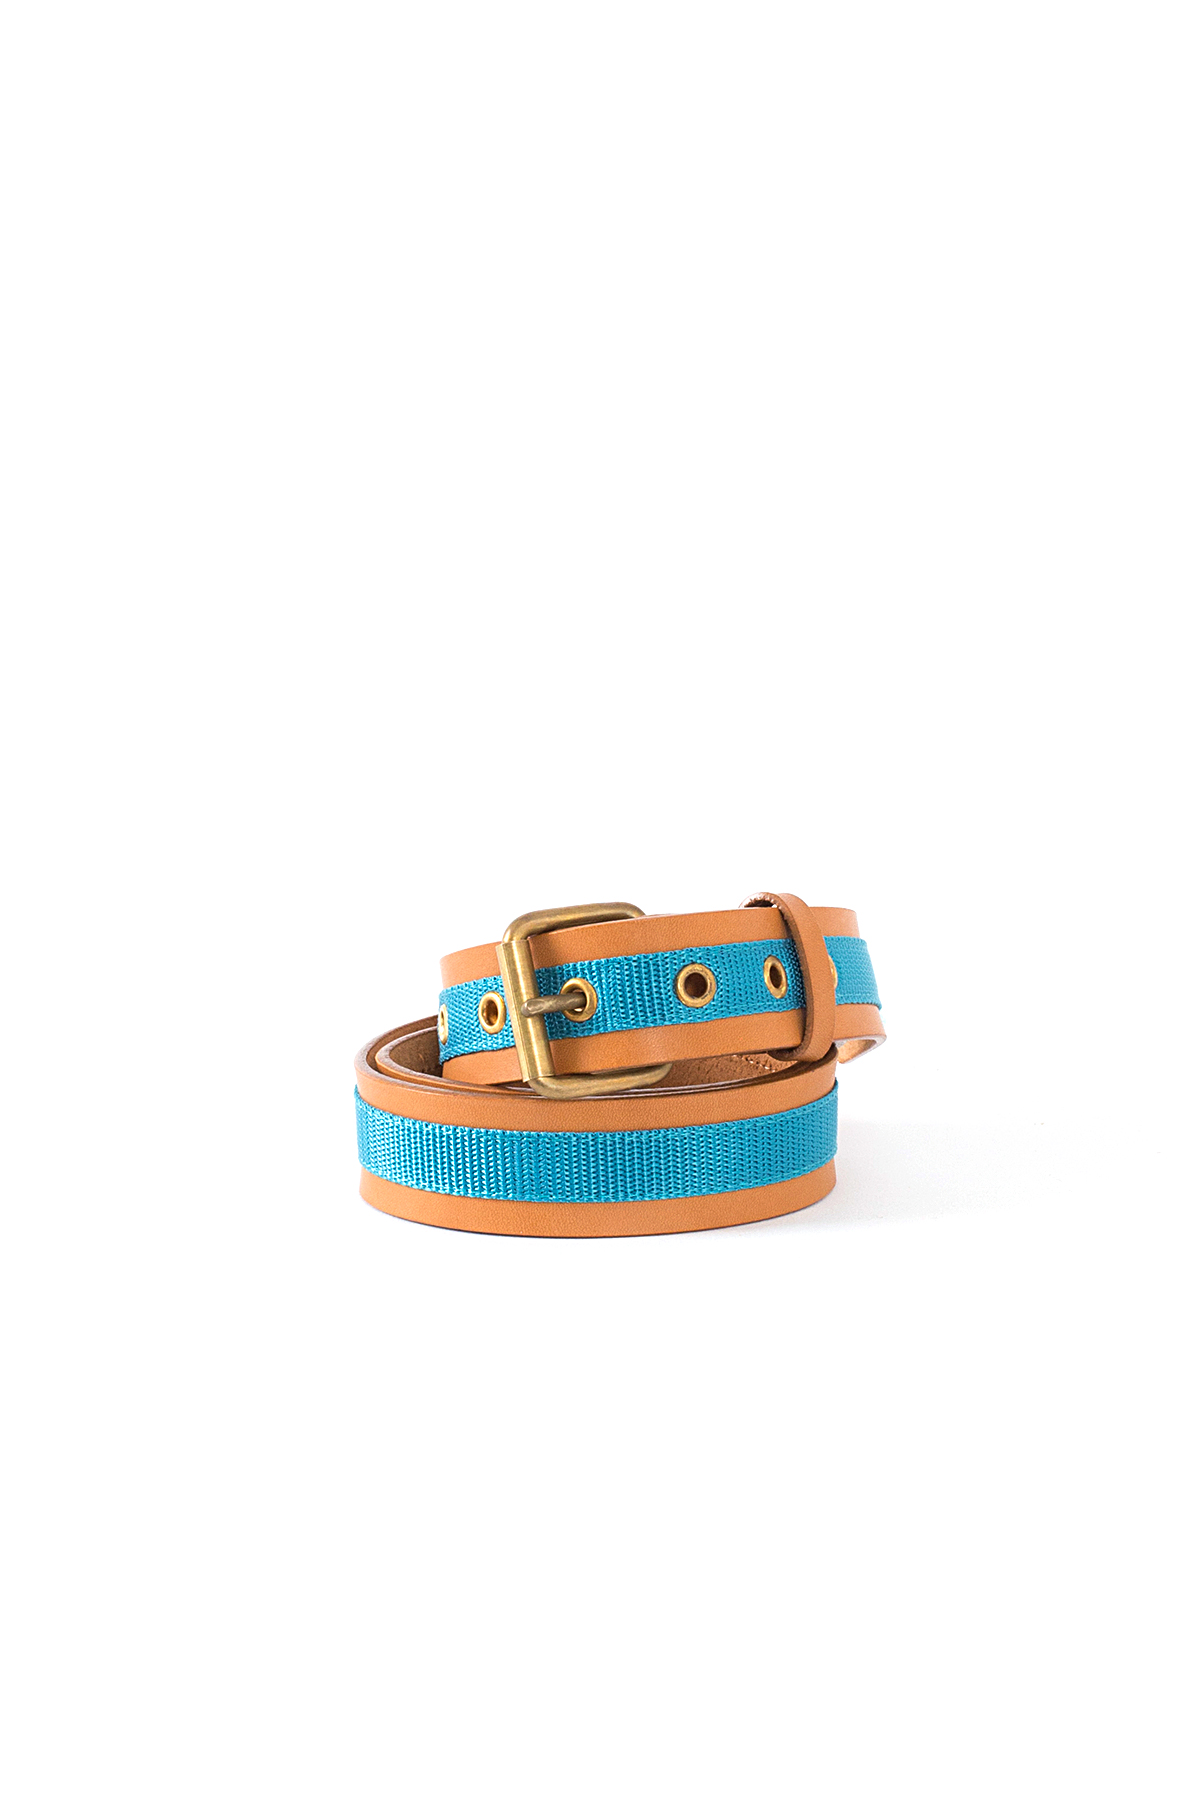 kolor / BEACON : Nylon Taped Leather Belt (Camel)